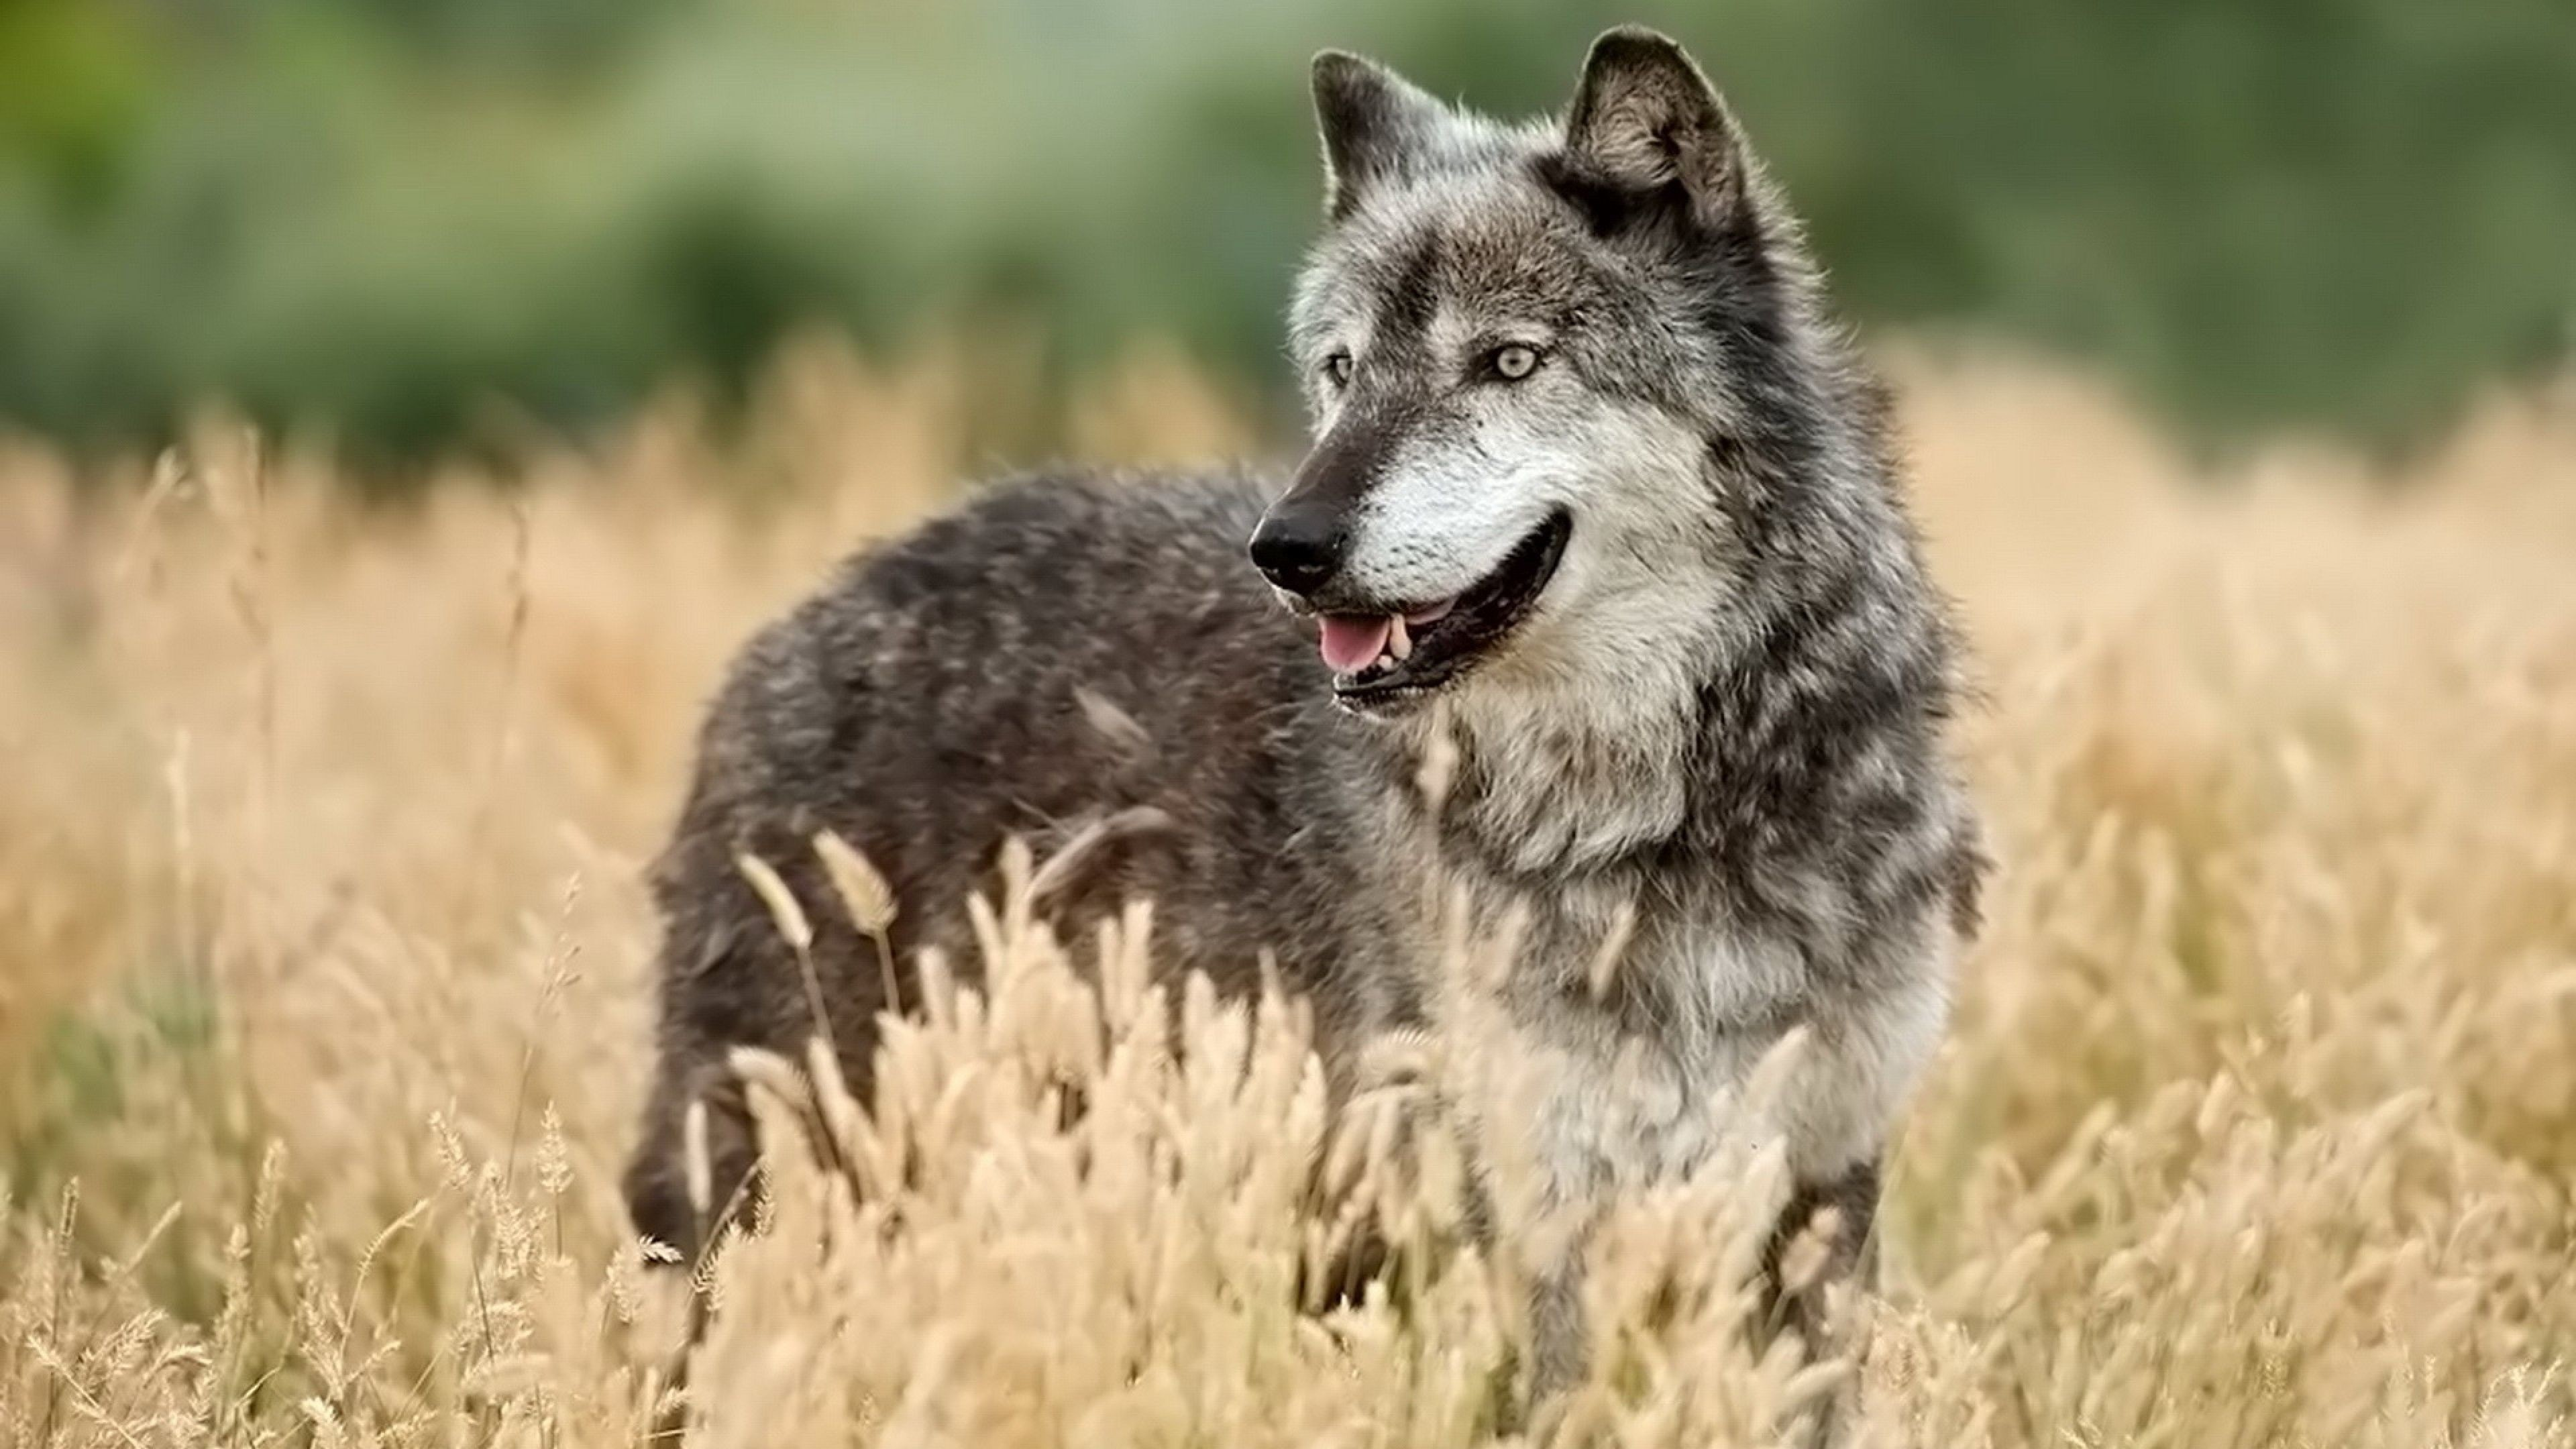 Hd Wolf Backgrounds: 4K Wolf Wallpaper (43+ Images